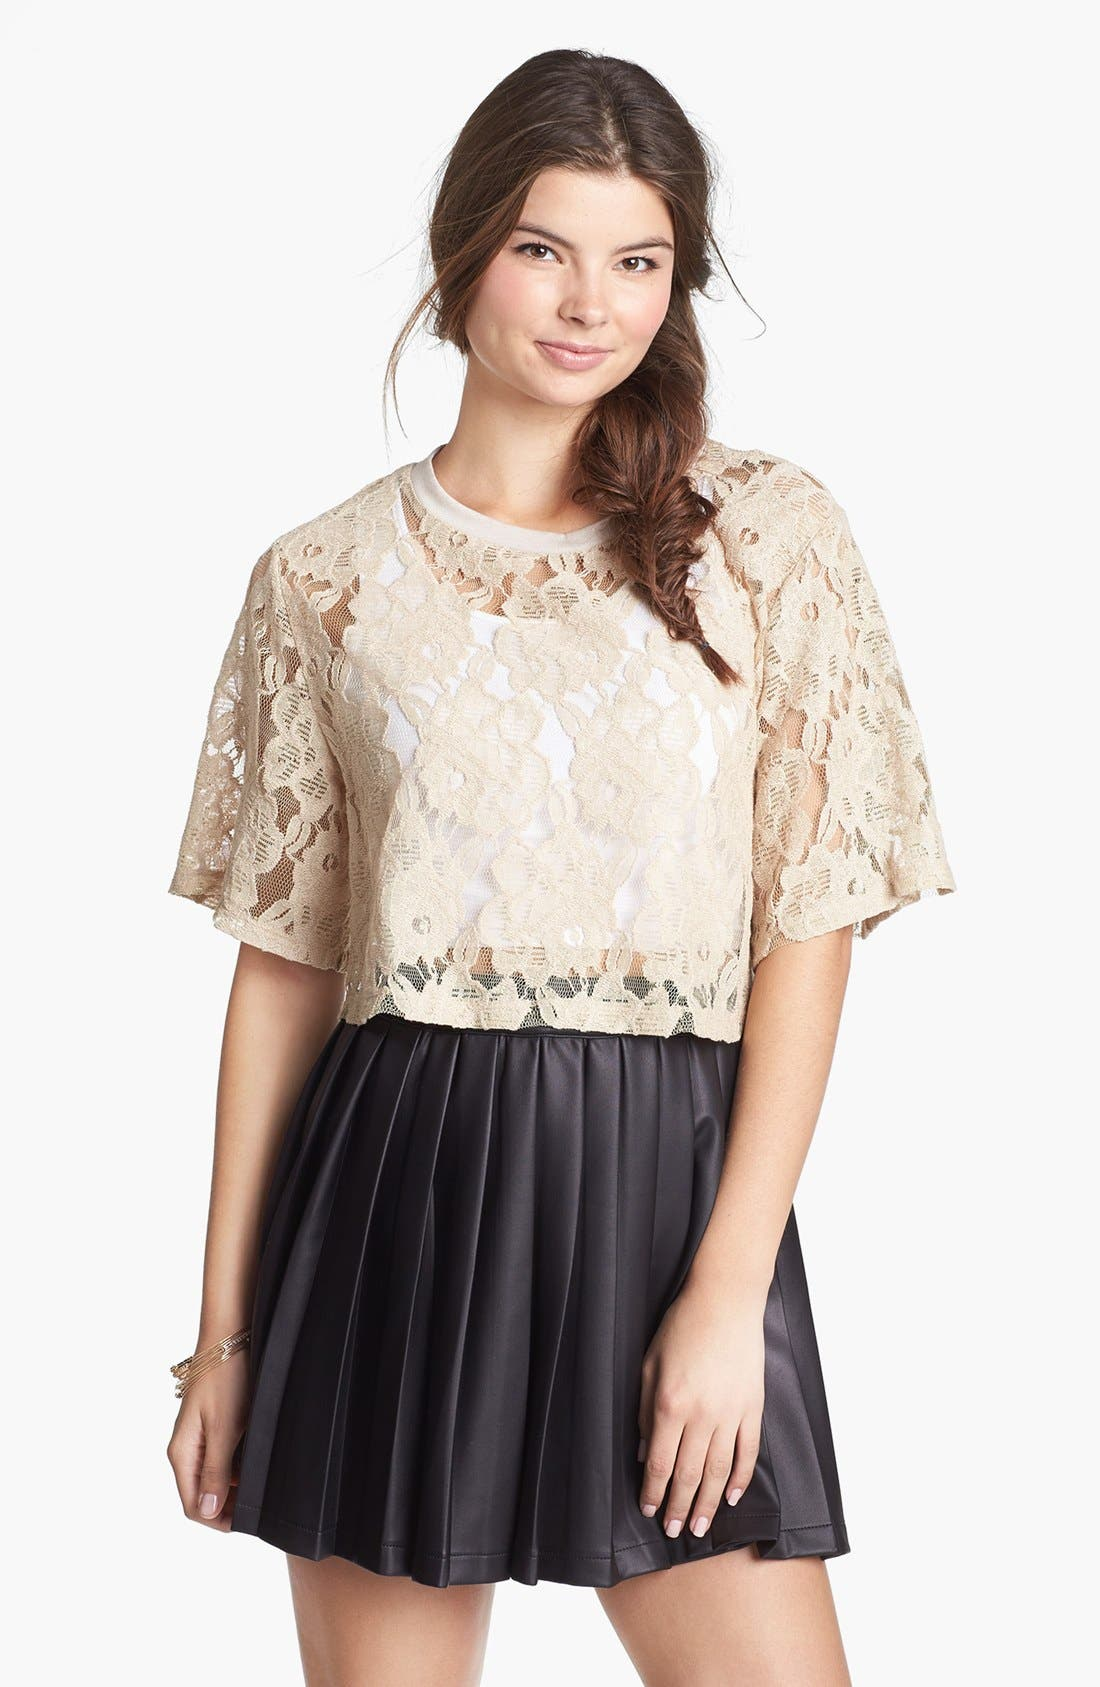 Alternate Image 1 Selected - Lily White Lace Crop Top (Juniors) (Online Only)